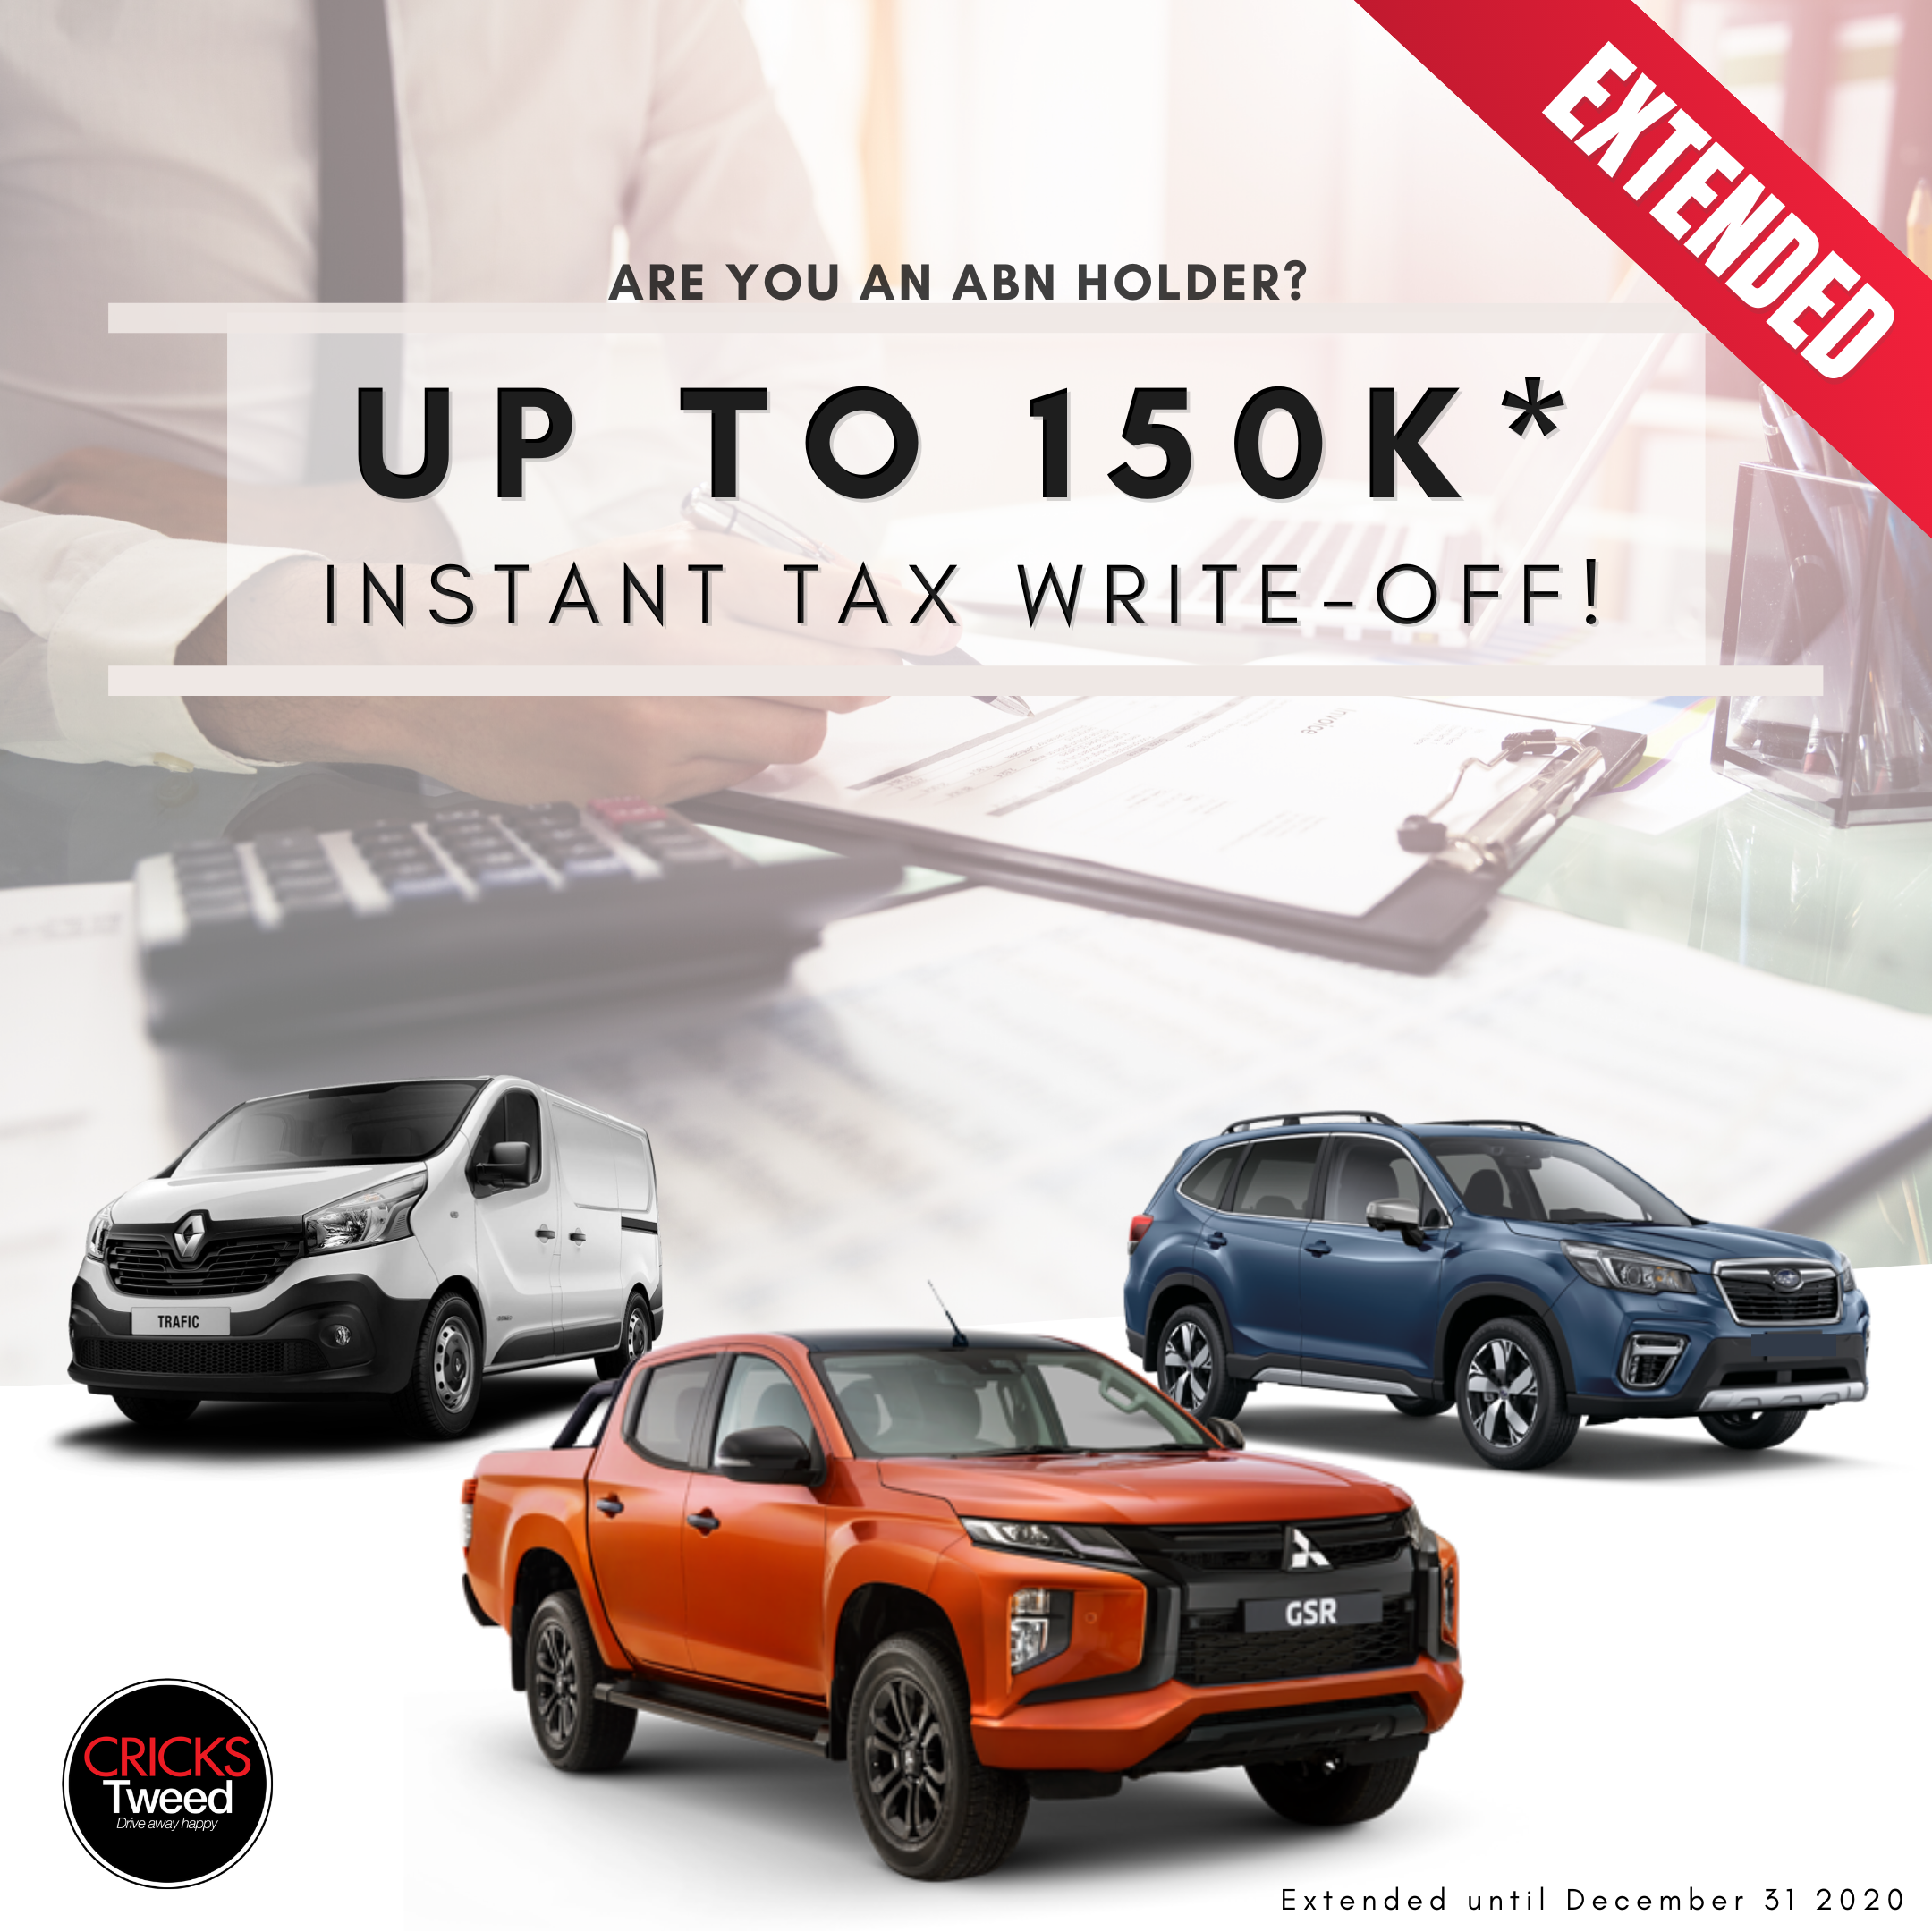 UP TO $150K* INSTANT TAX WRITE-OFF!